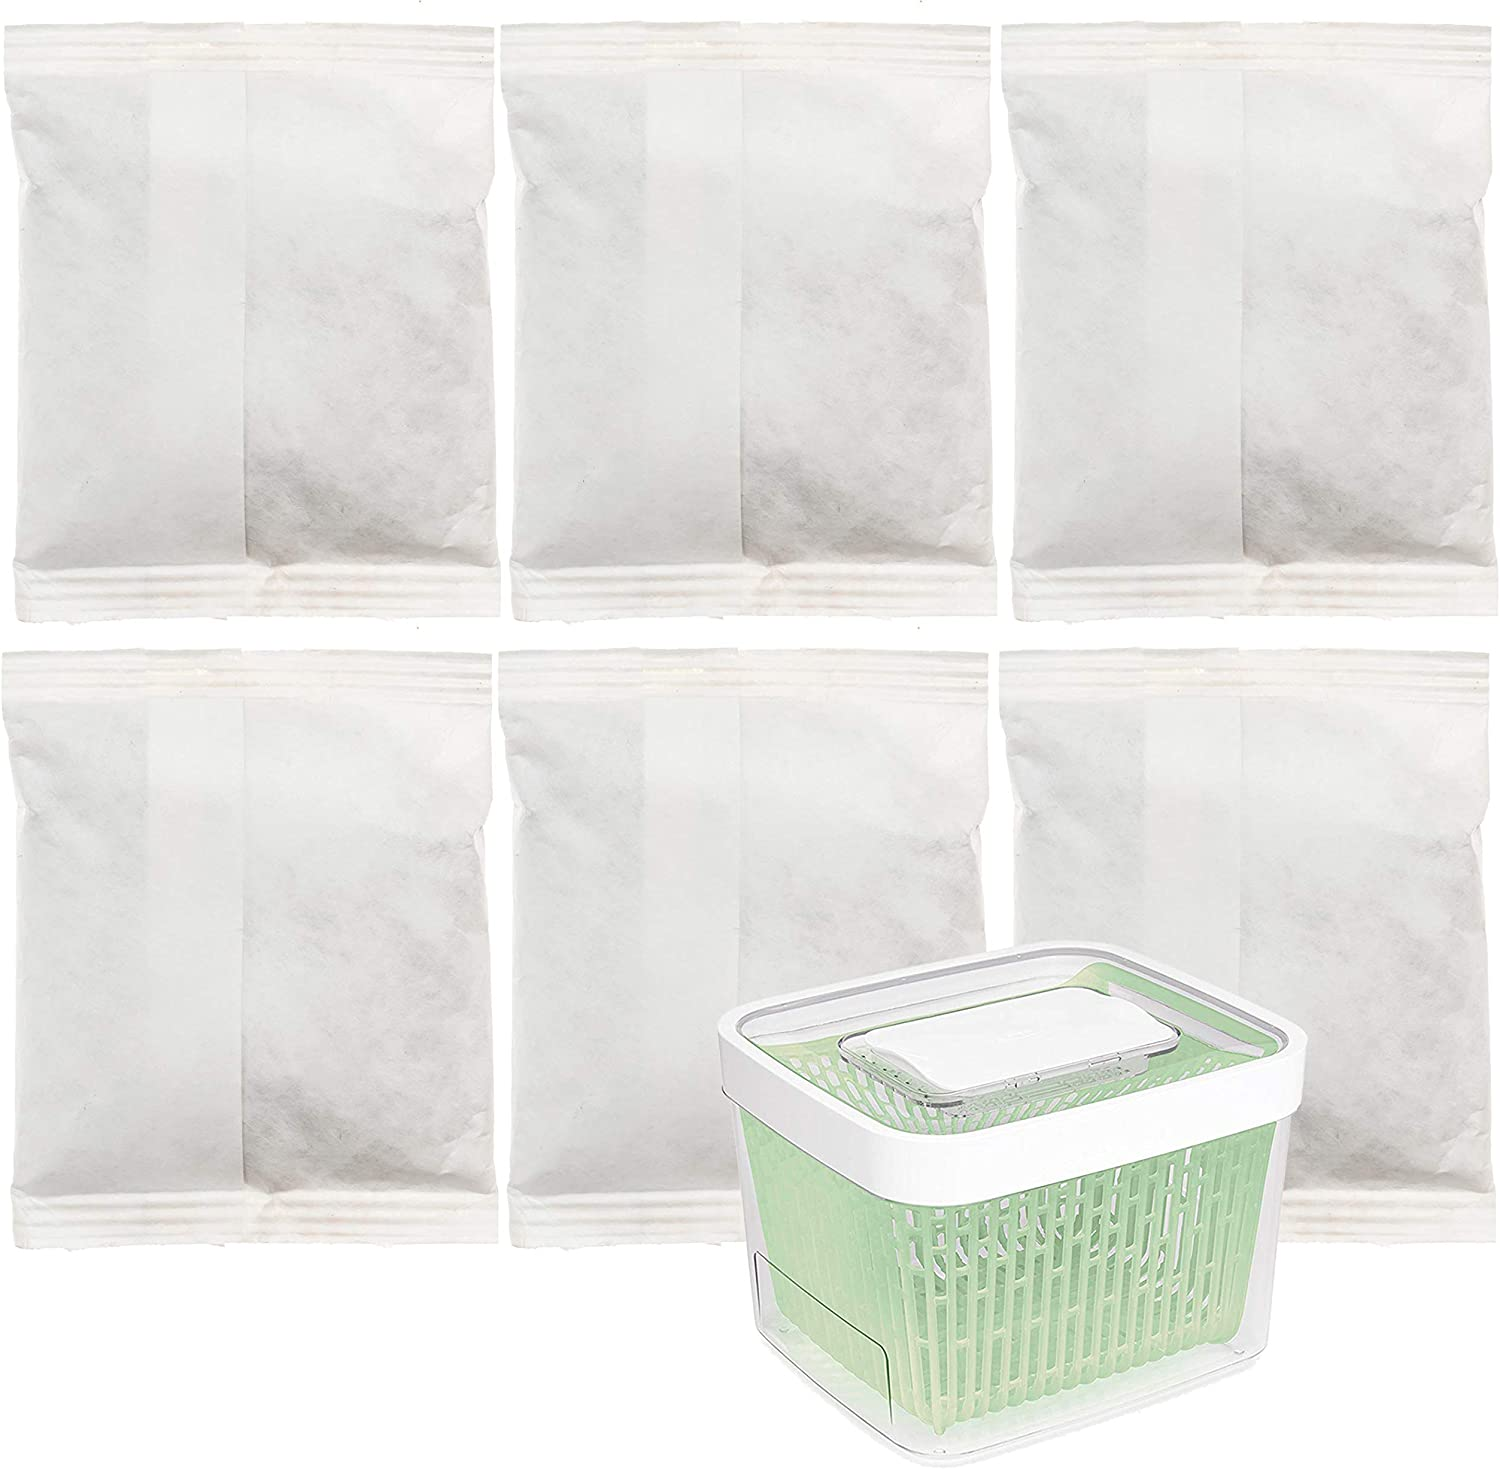 Impresa 6 Pack Greensaver Produce Preserver Filter Refills Compatible With OXO Greensaver - 11145300 Fully Breathable Paper Sachet - Made in The USA (20g Per Sachet)